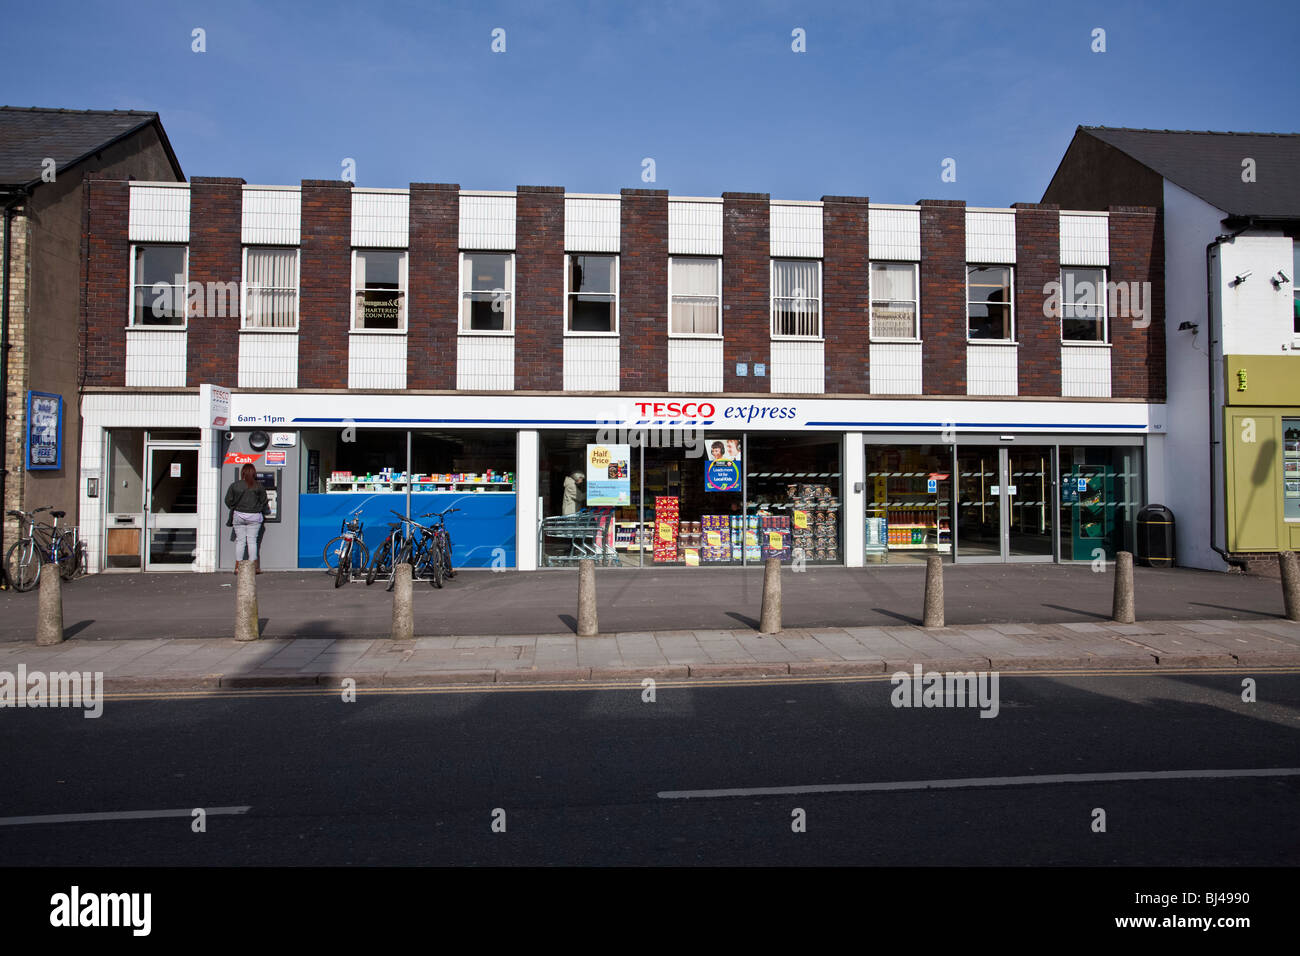 The controversial Tesco Express store in Mill Road Cambridge - Stock Image